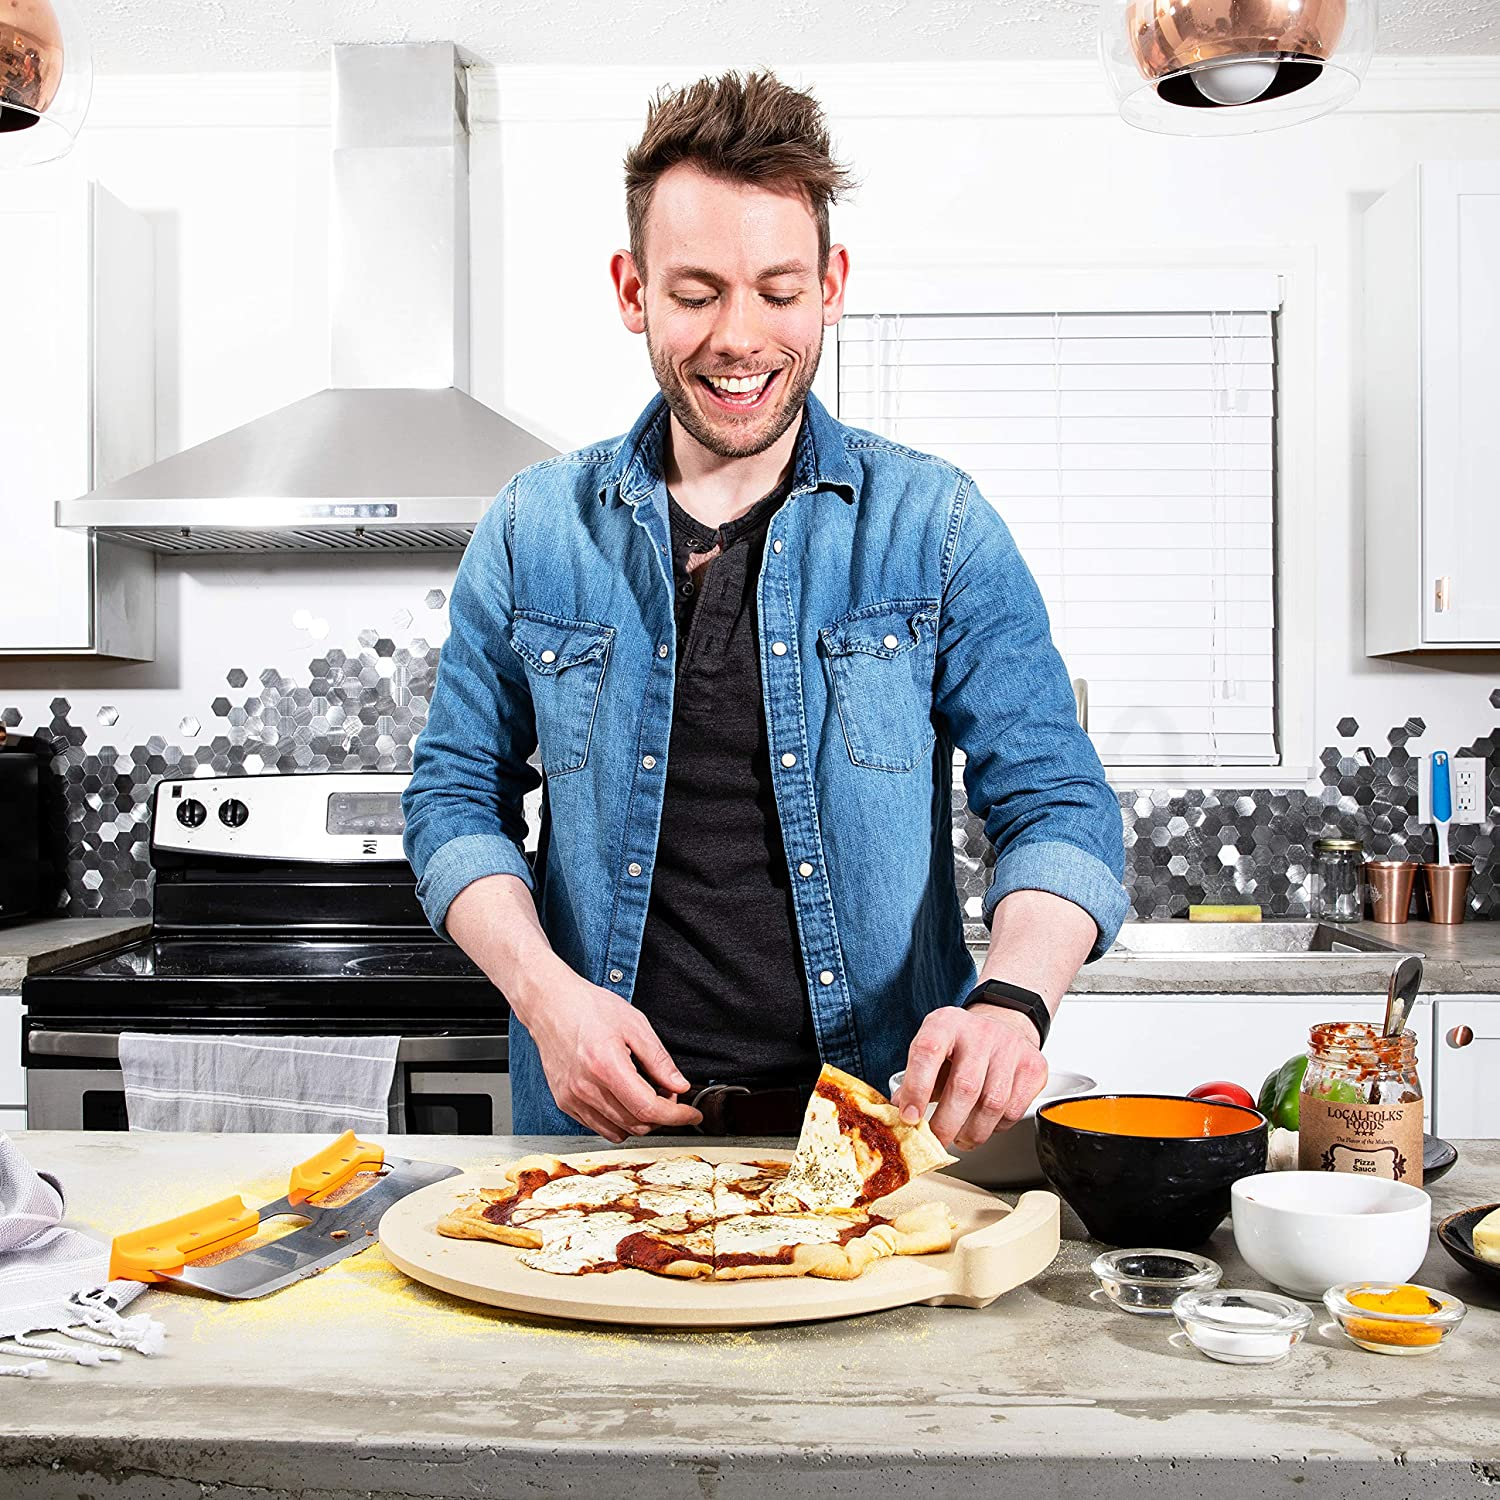 The Ultimate Pizza Stone for Oven Grill. 16 inch Round Baking Stone with Exclusive ThermaShock Protection Core Convection Tech for the Perfect Crispy Crust on Pizzas Bread. No-Spill Stopper